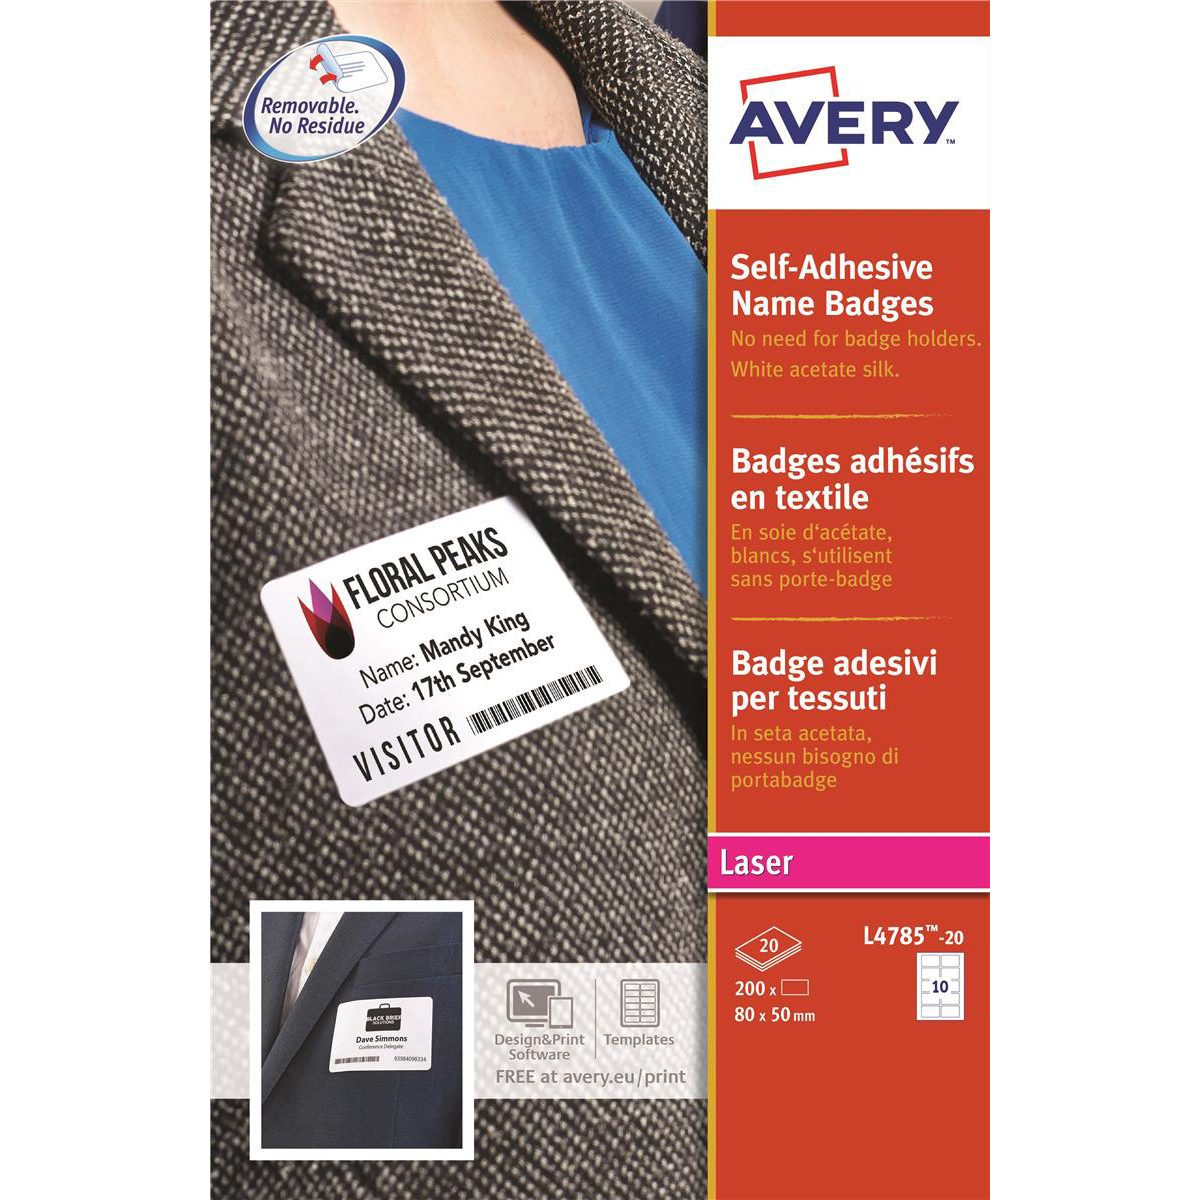 Avery Name Badge Labels Laser Self-adhesive 80x50mm White Ref L4785-20 [200 Labels]